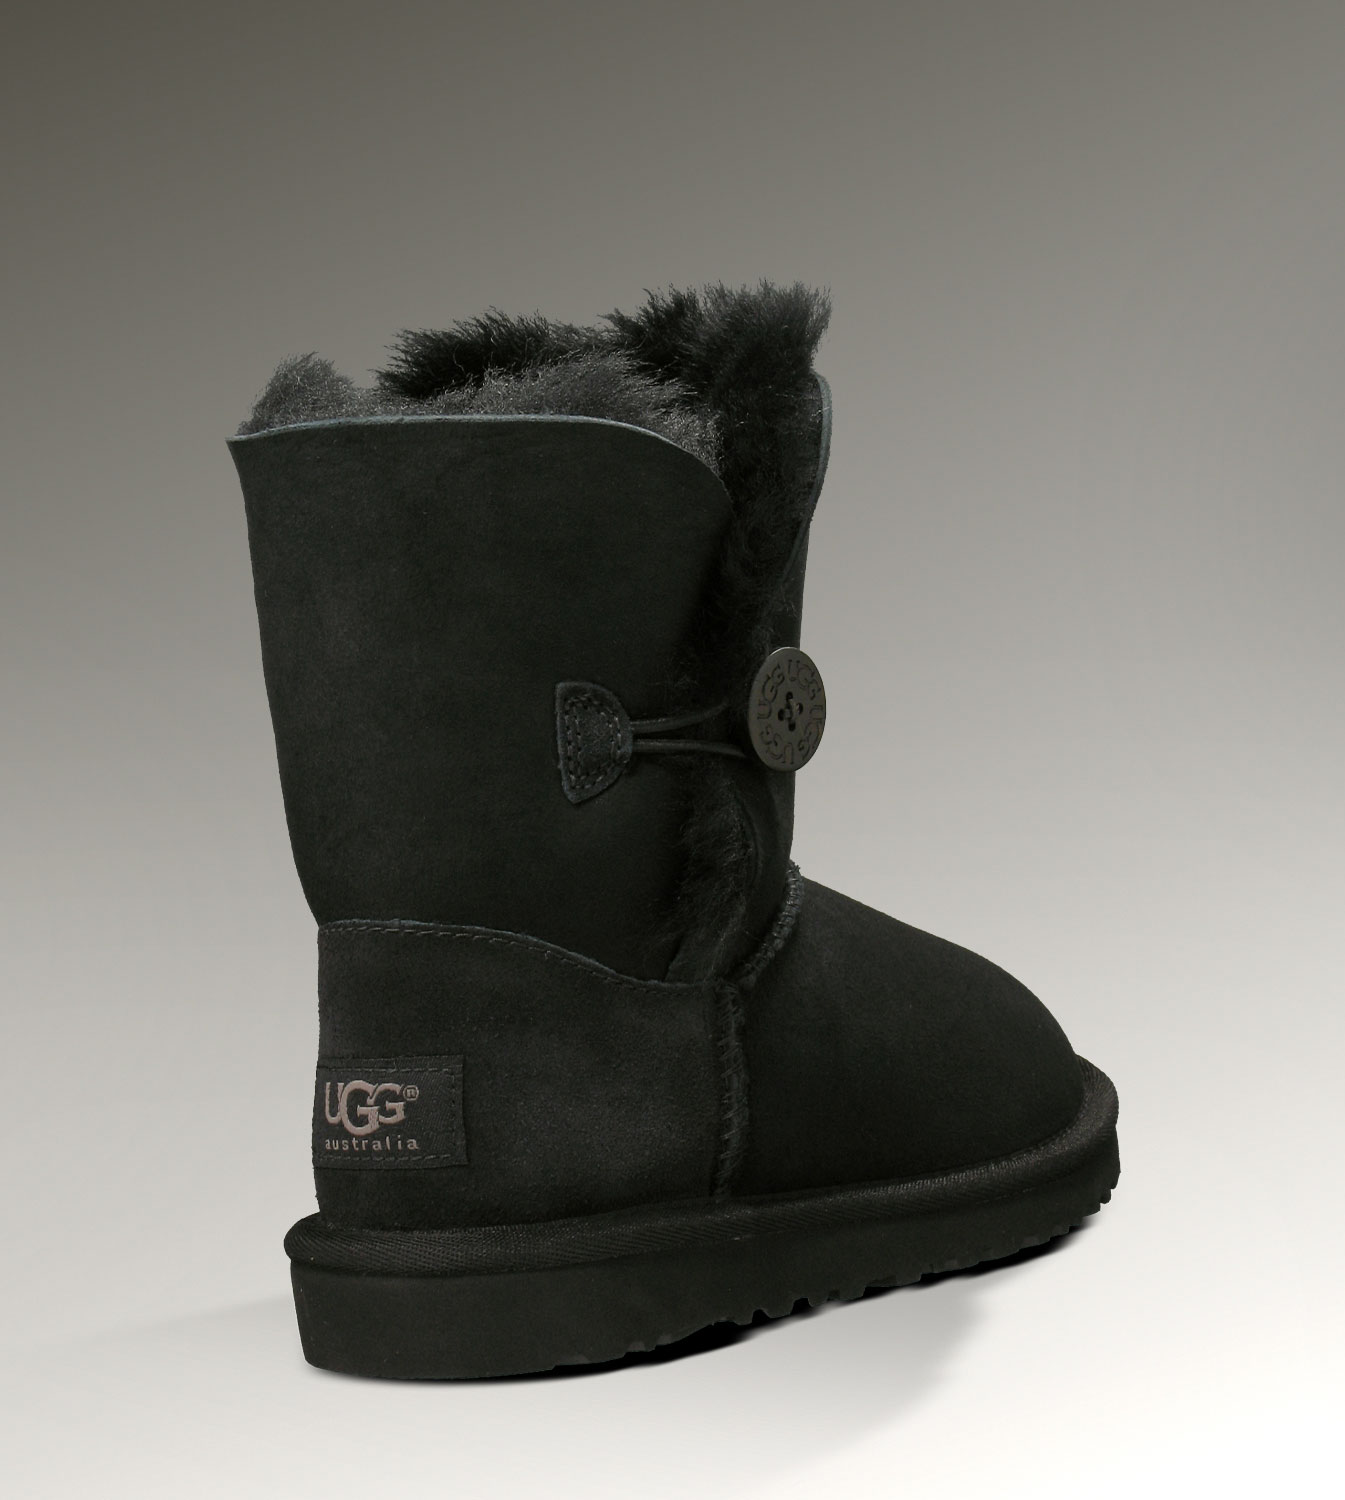 UGG Bailey Button 5991 Black Boots